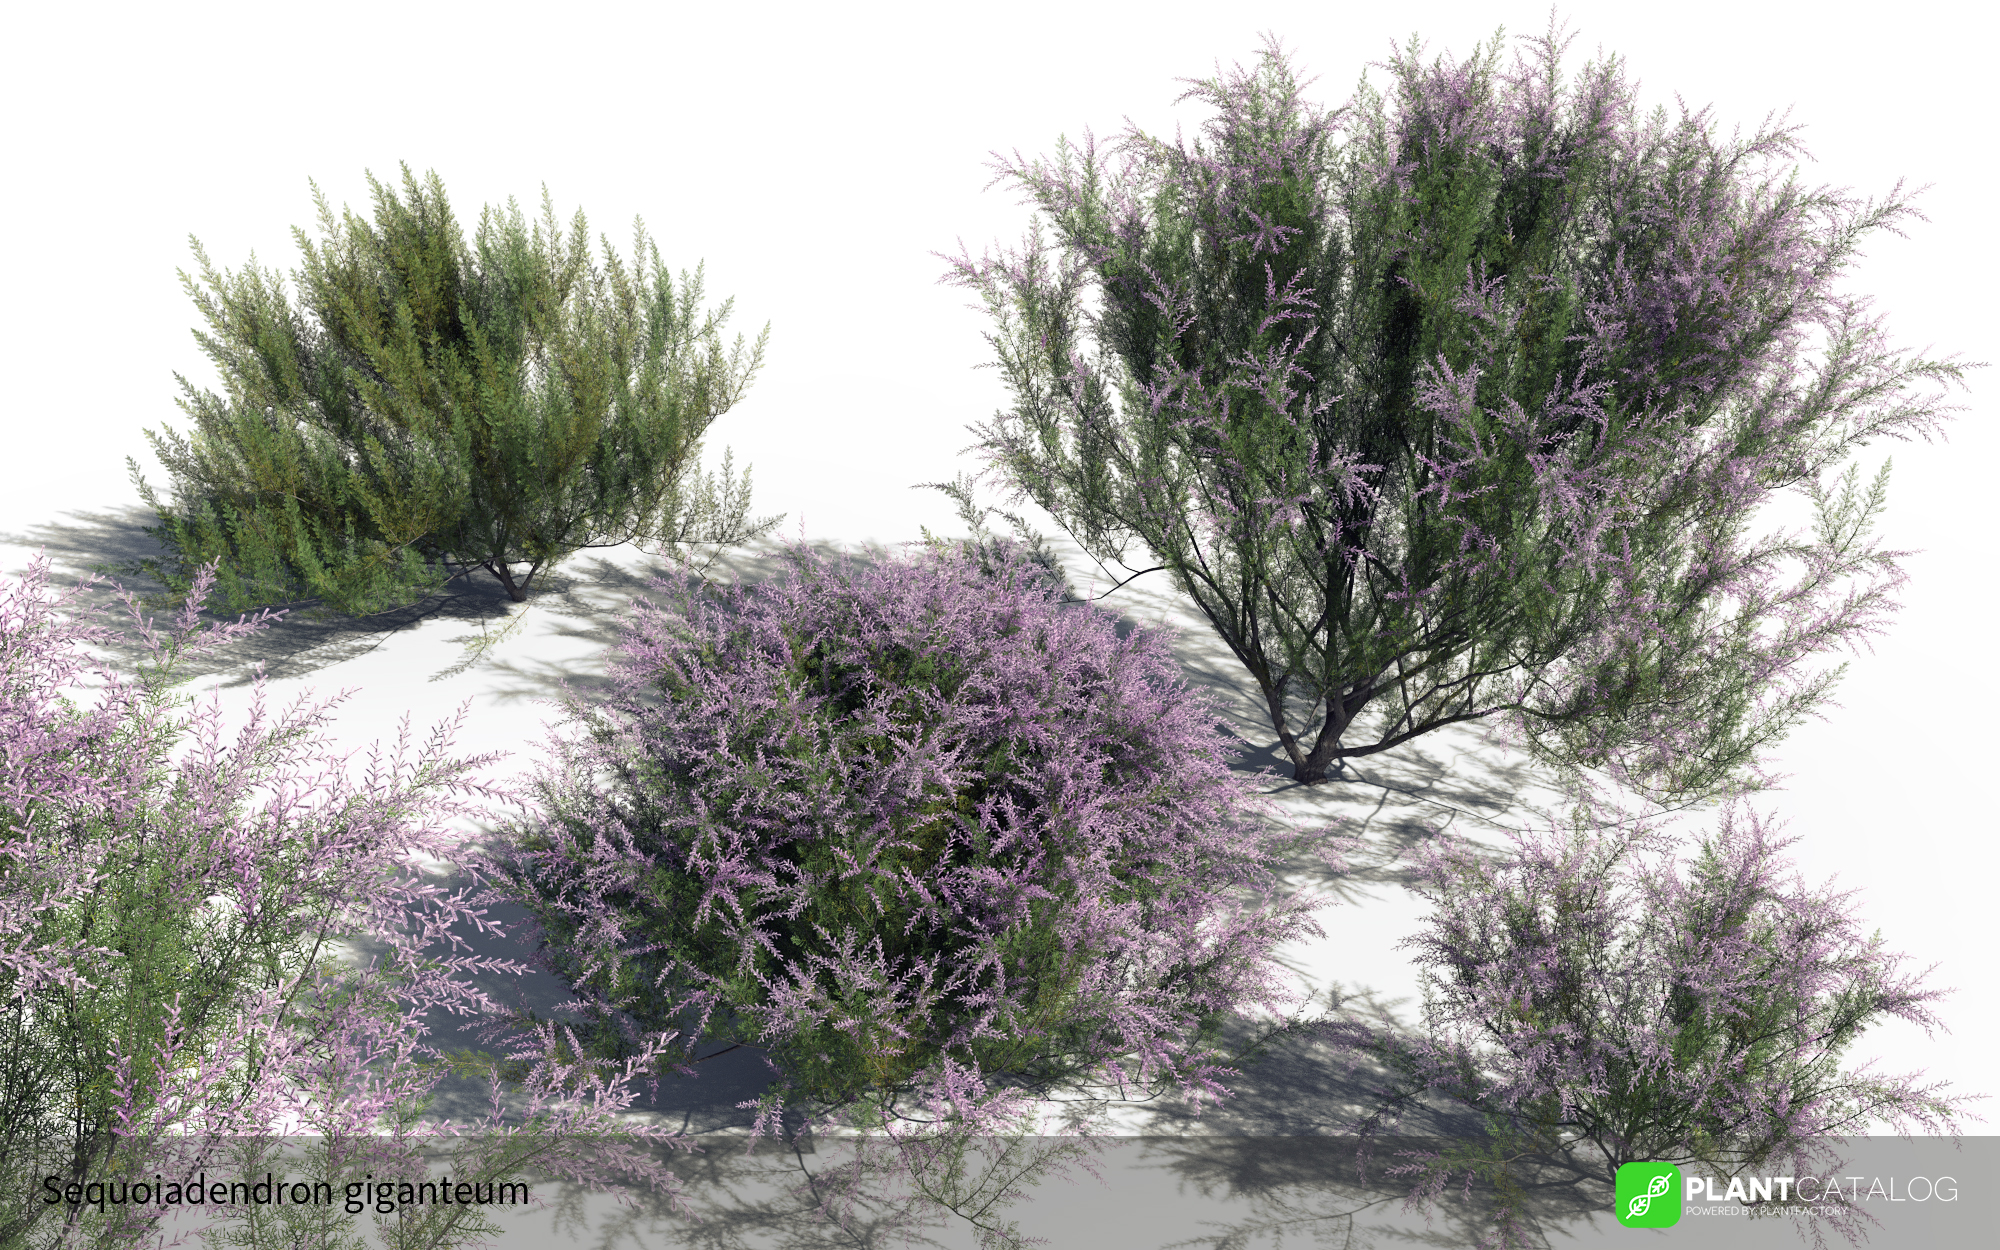 3D model of the French tamarisk - Tamarix gallica - from the PlantCatalog, rendered in VUE